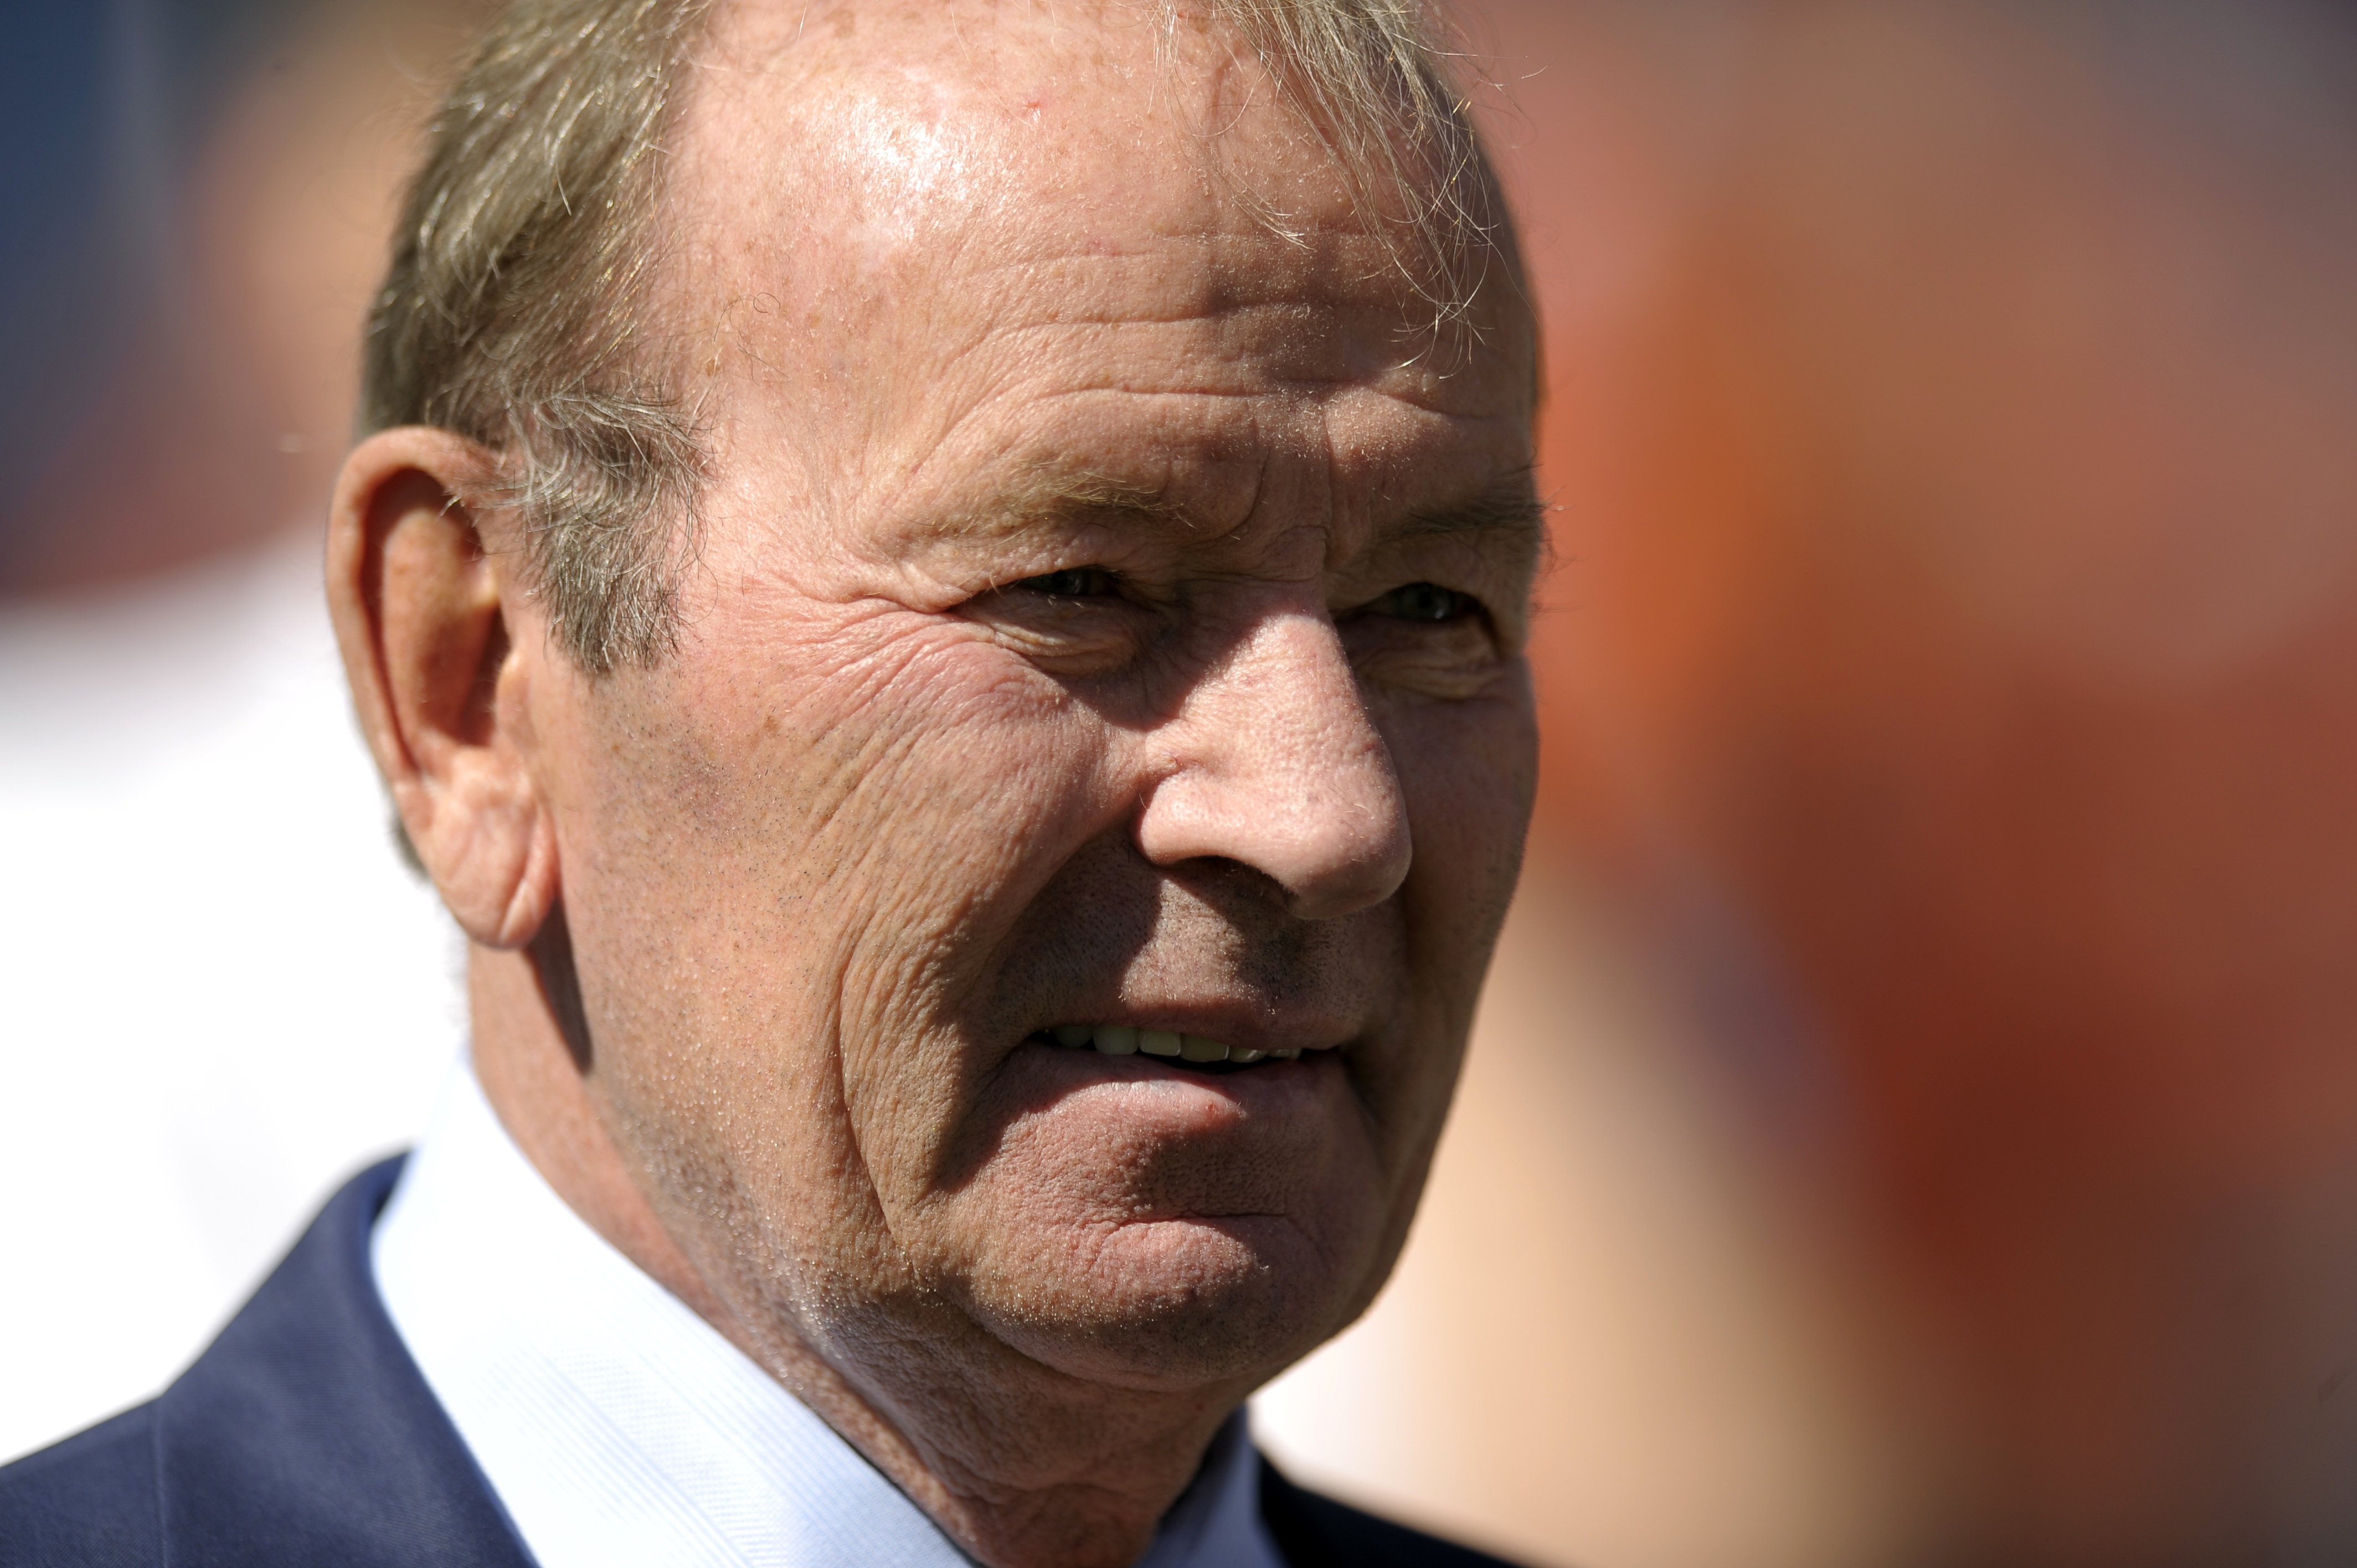 FILE - This is a Sept. 29, 2013 file photo showing Denver Broncos owner Pat Bowlen looking on during an NFL game against the Philadelphia Eagles in Denver. Former Denver Broncos' John Elway wants nothing more than to return the favor to team owner Pat Bow